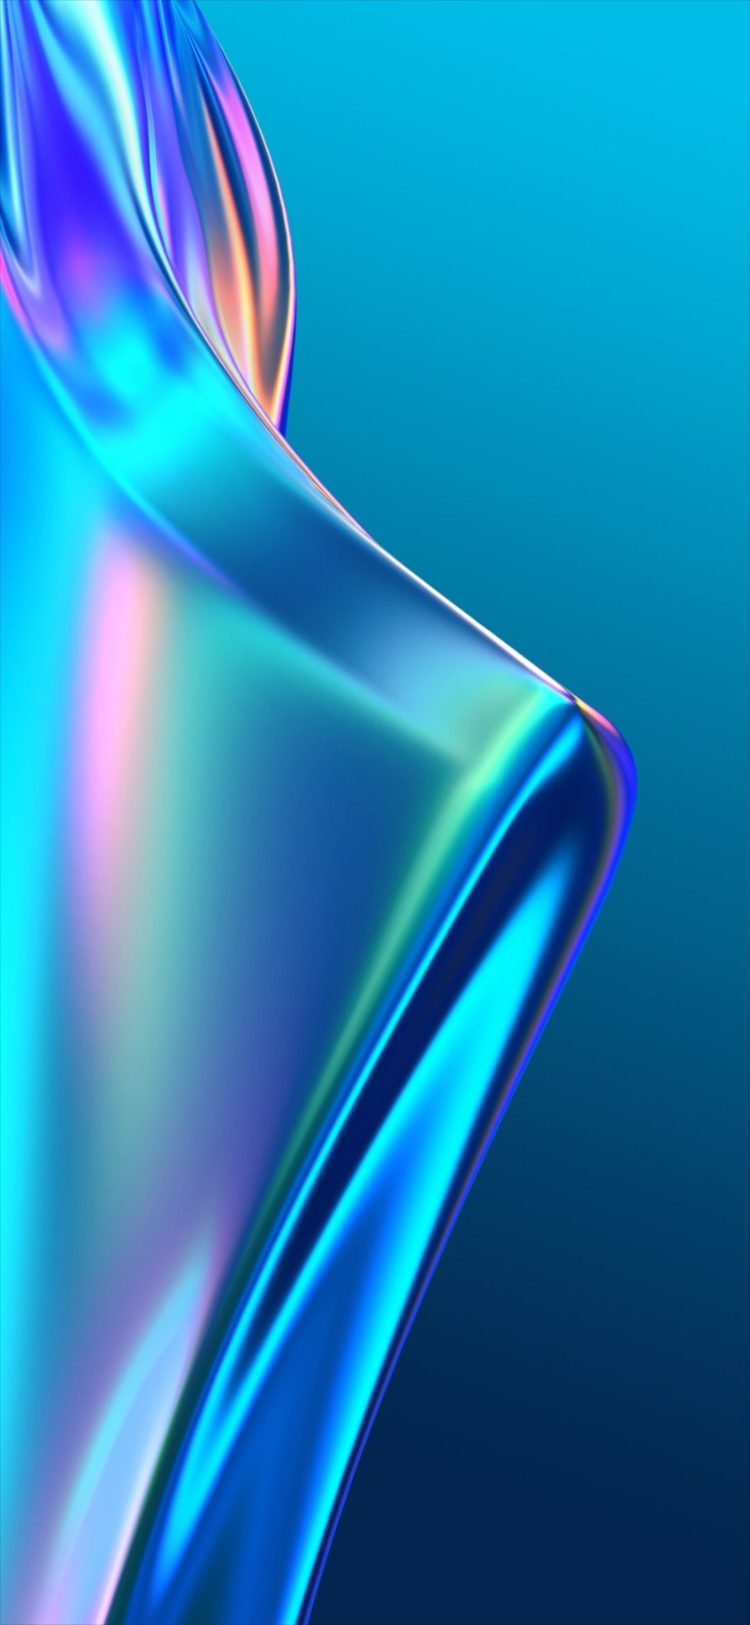 Oppo Reno 5 Pro 5g Stock Wallpapers 1080x2340